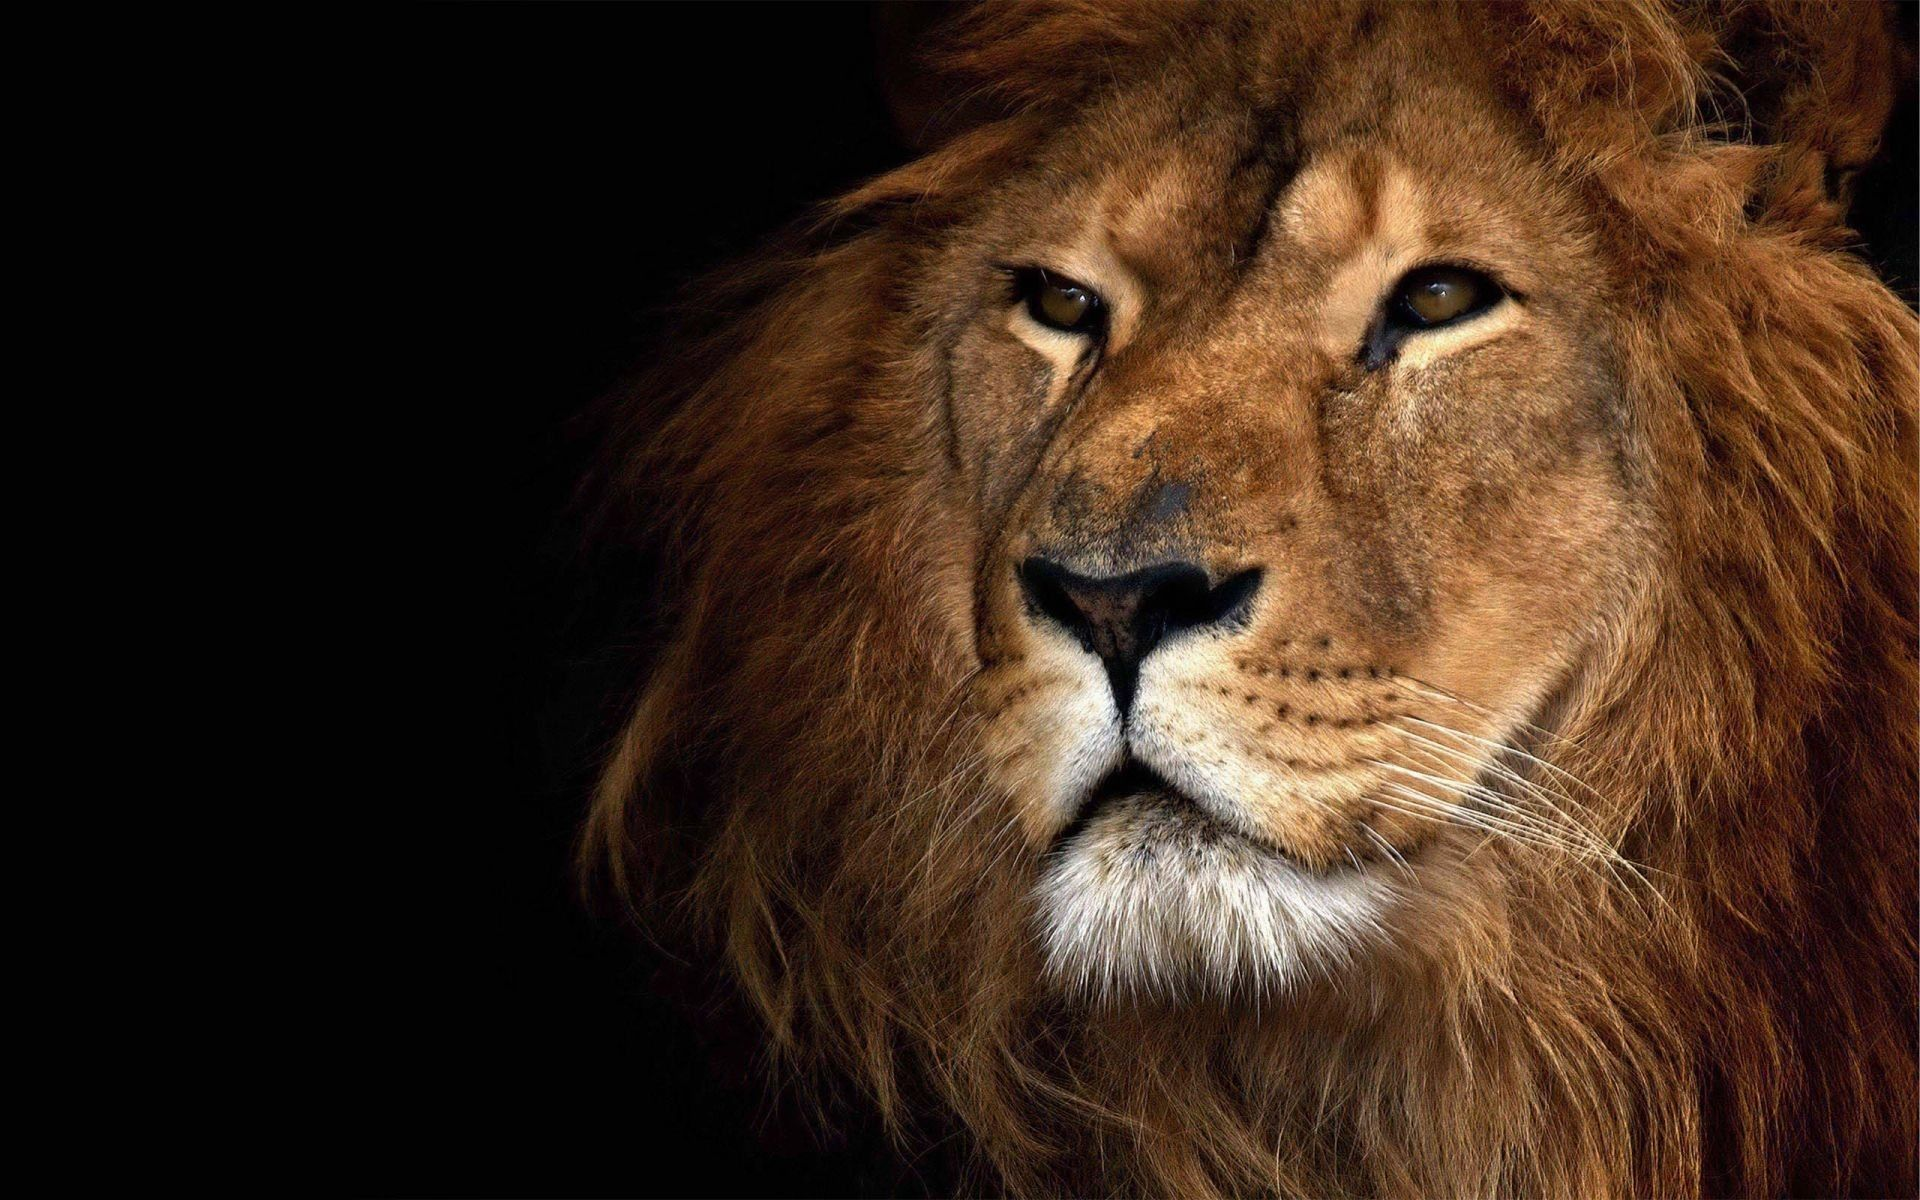 Lion Face Wallpapers - Top Free Lion ...